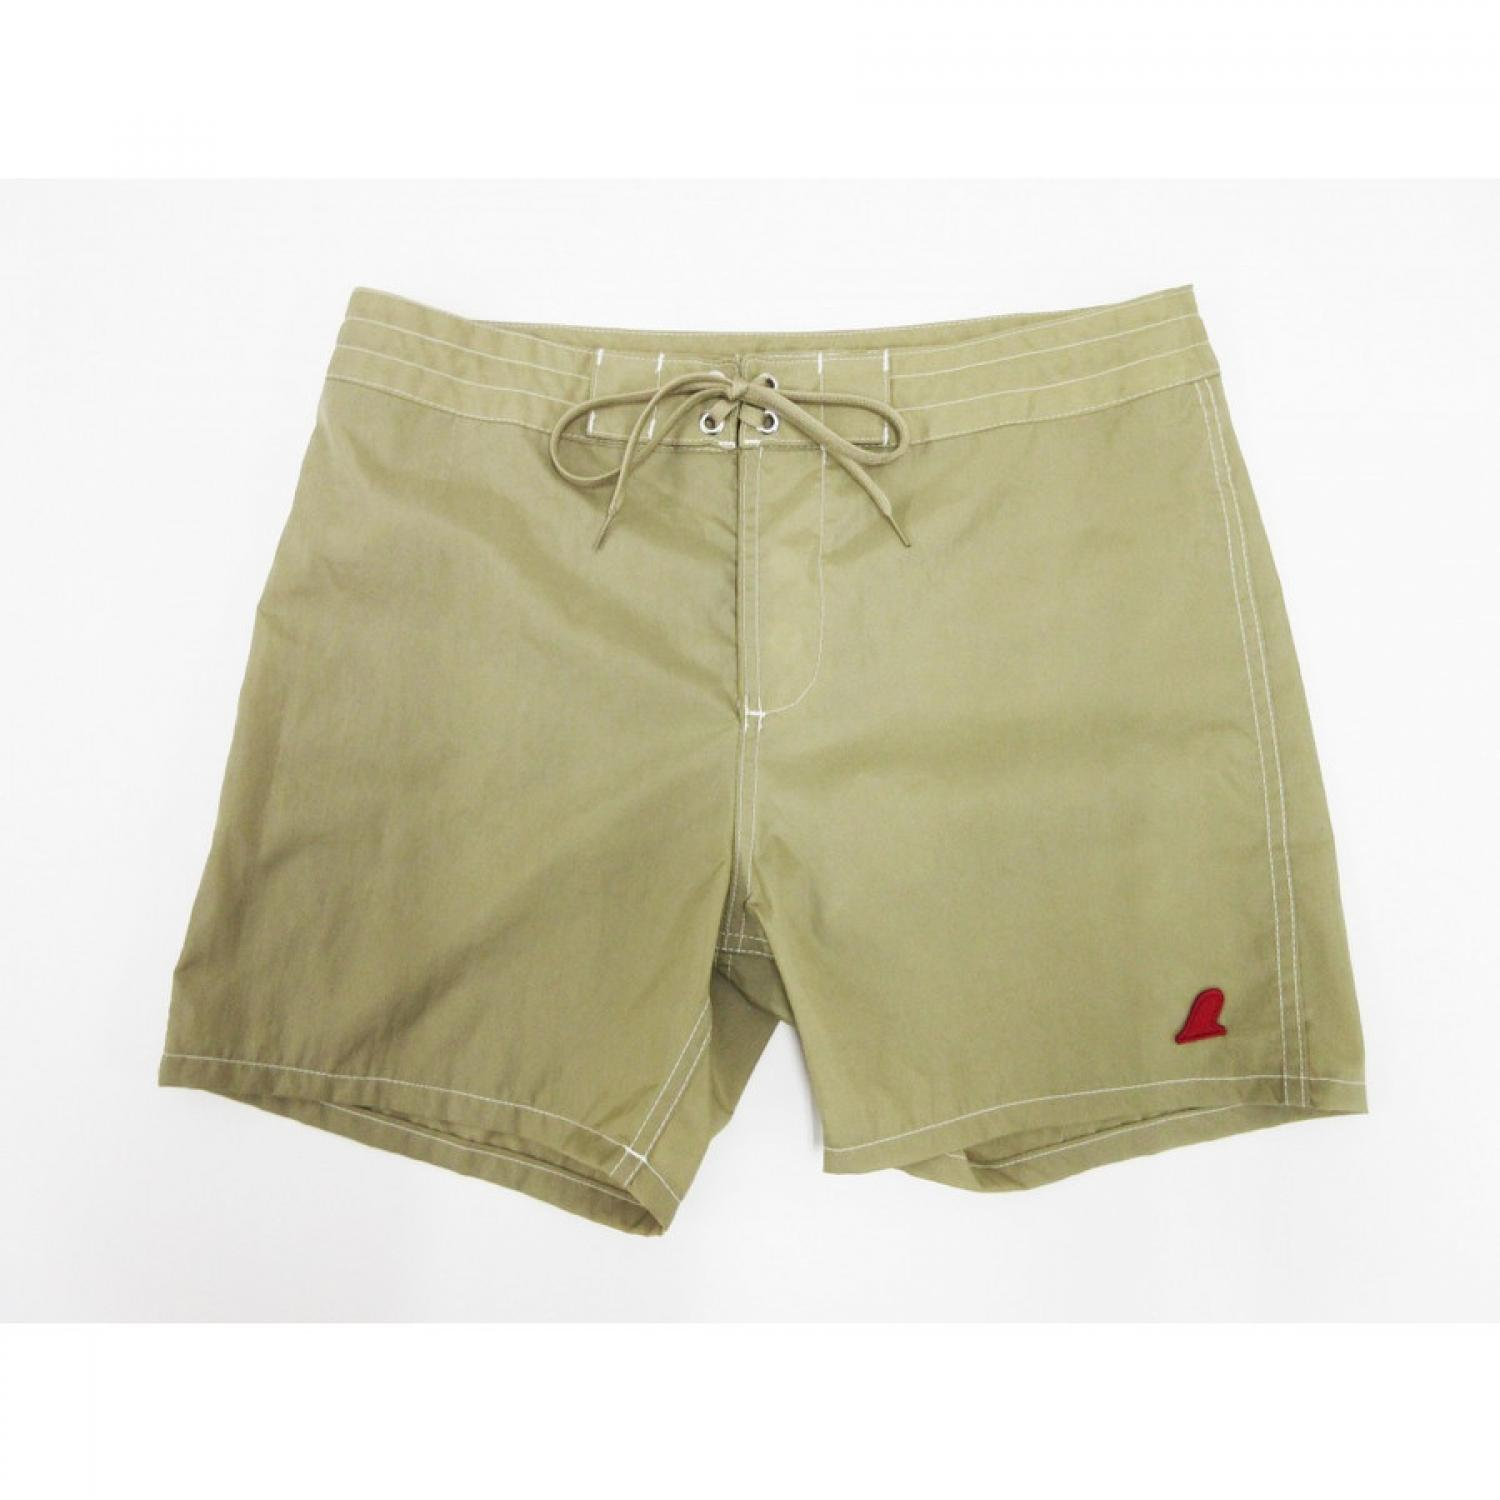 VOLN RED FIN BOARDSHORTS BEIGE